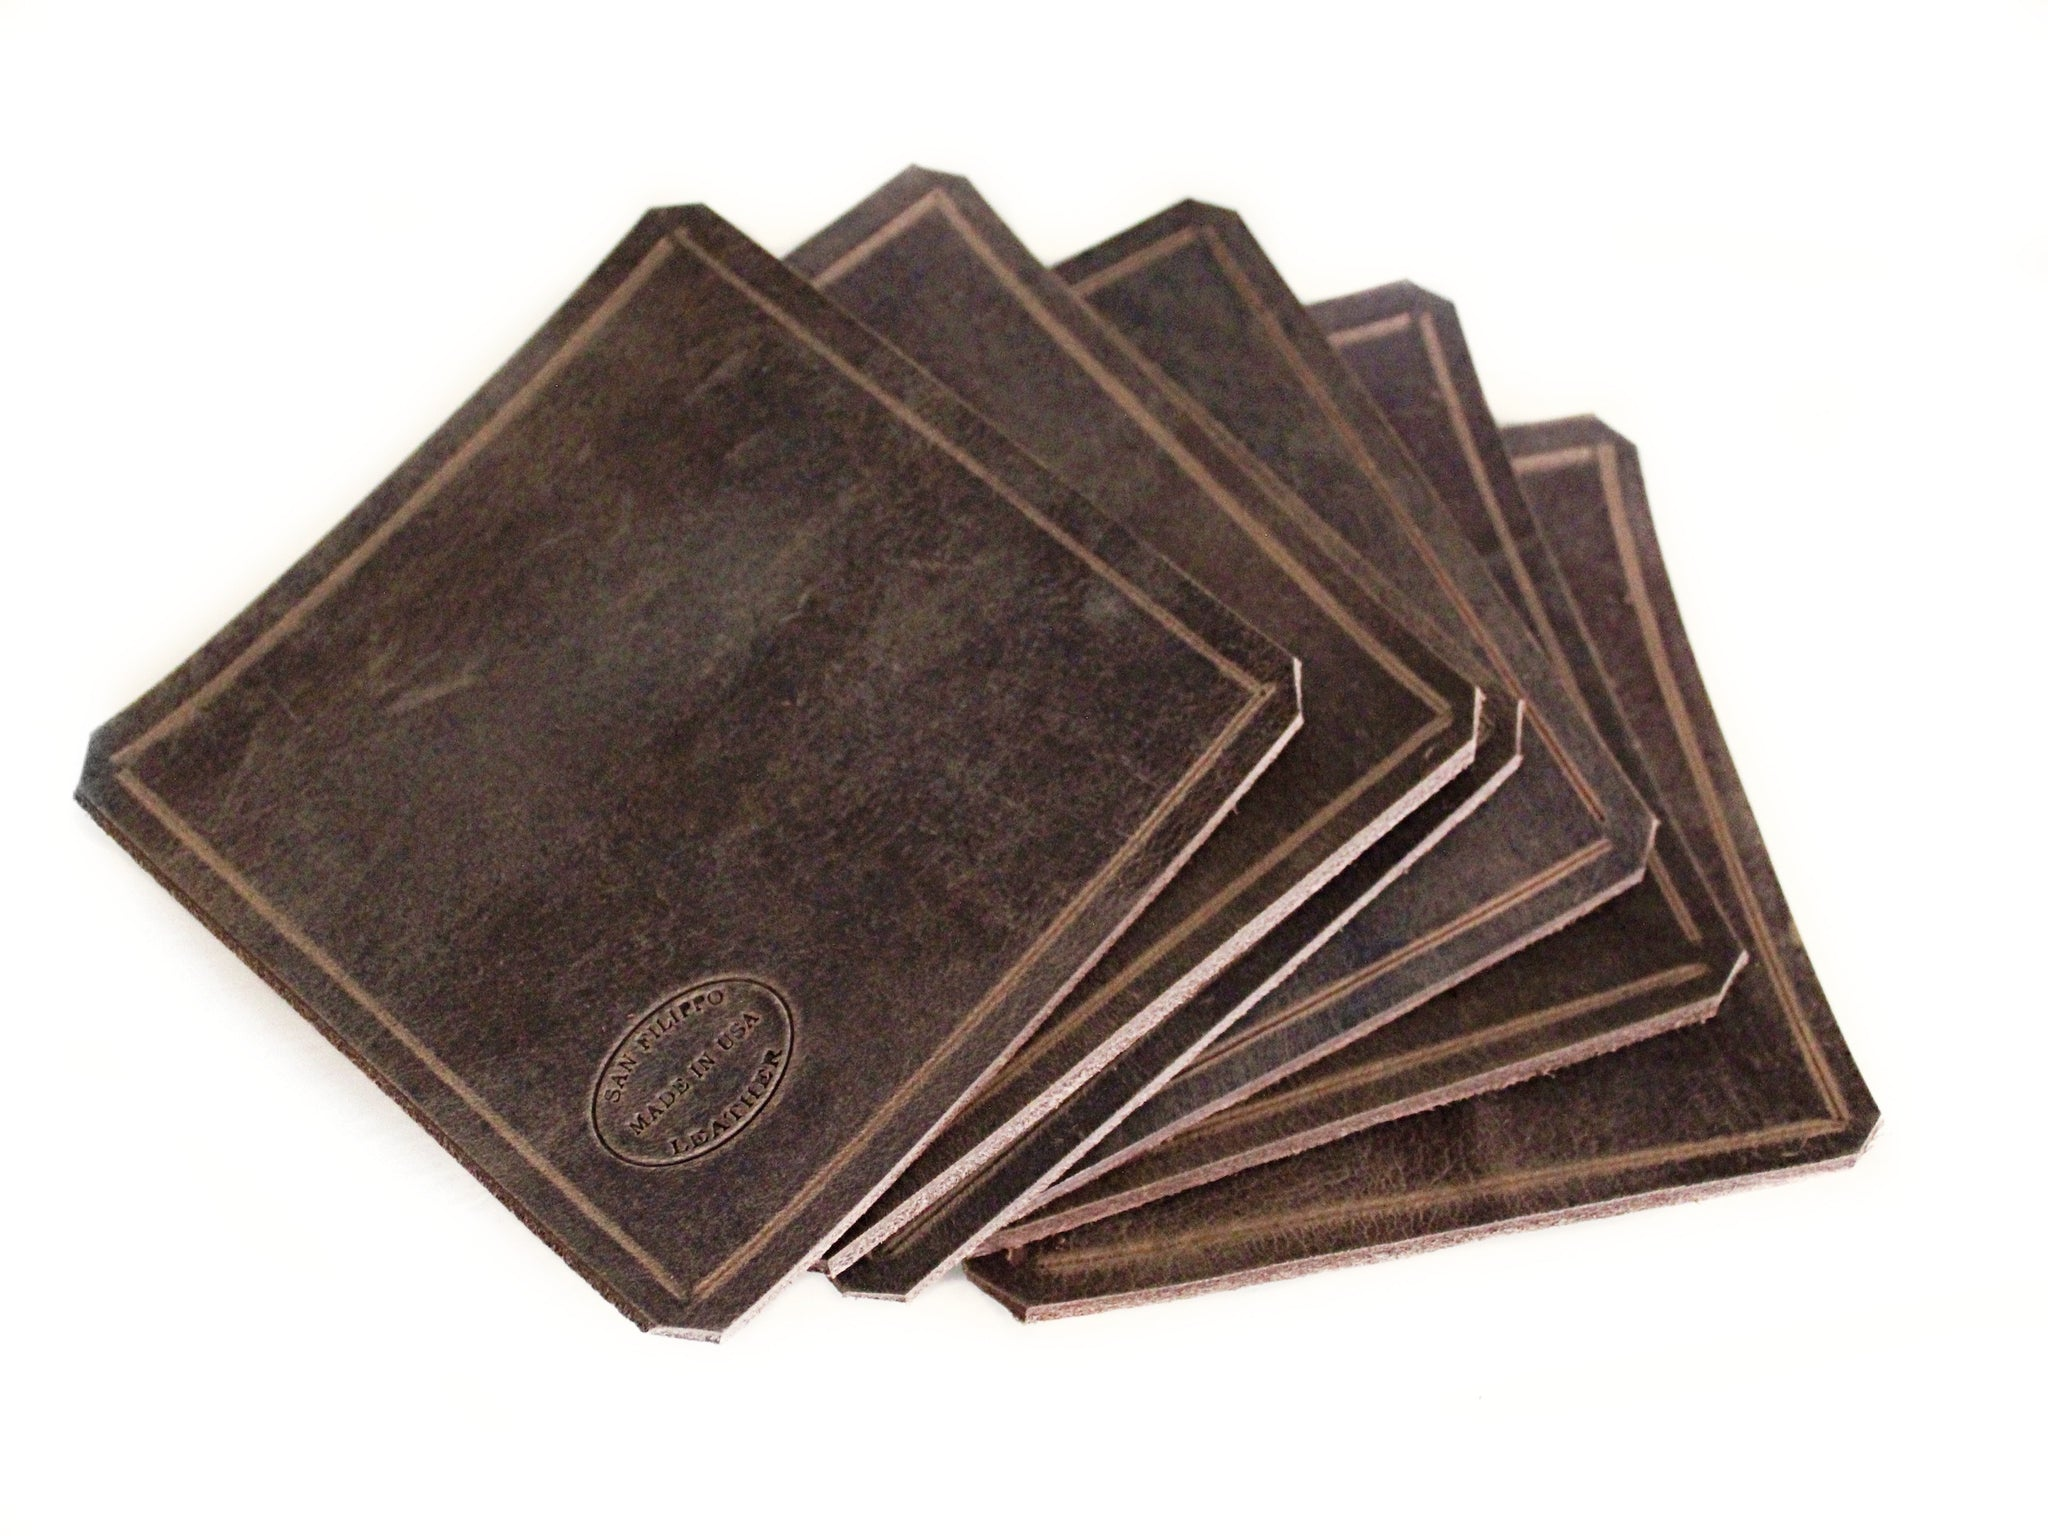 Brown Leather Coaster Set Square Barware Housewarming Gift San Filippo Leather